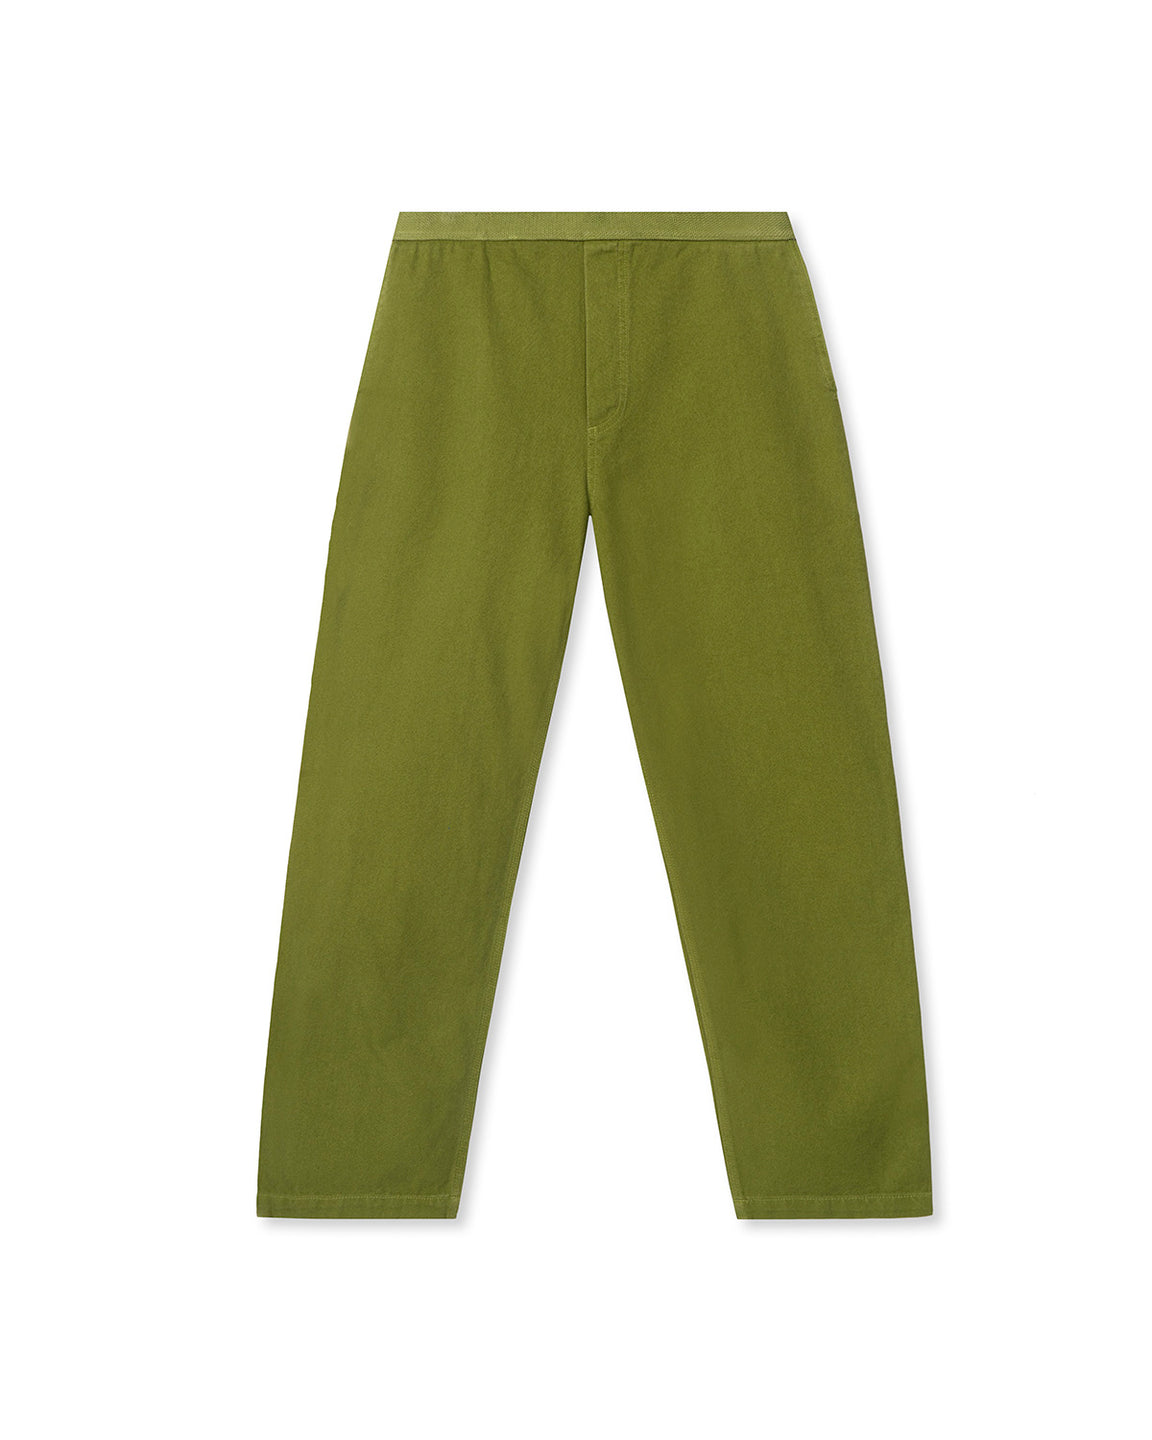 Washed Hard Ware/ Soft Wear Carpenter Pant - Moss